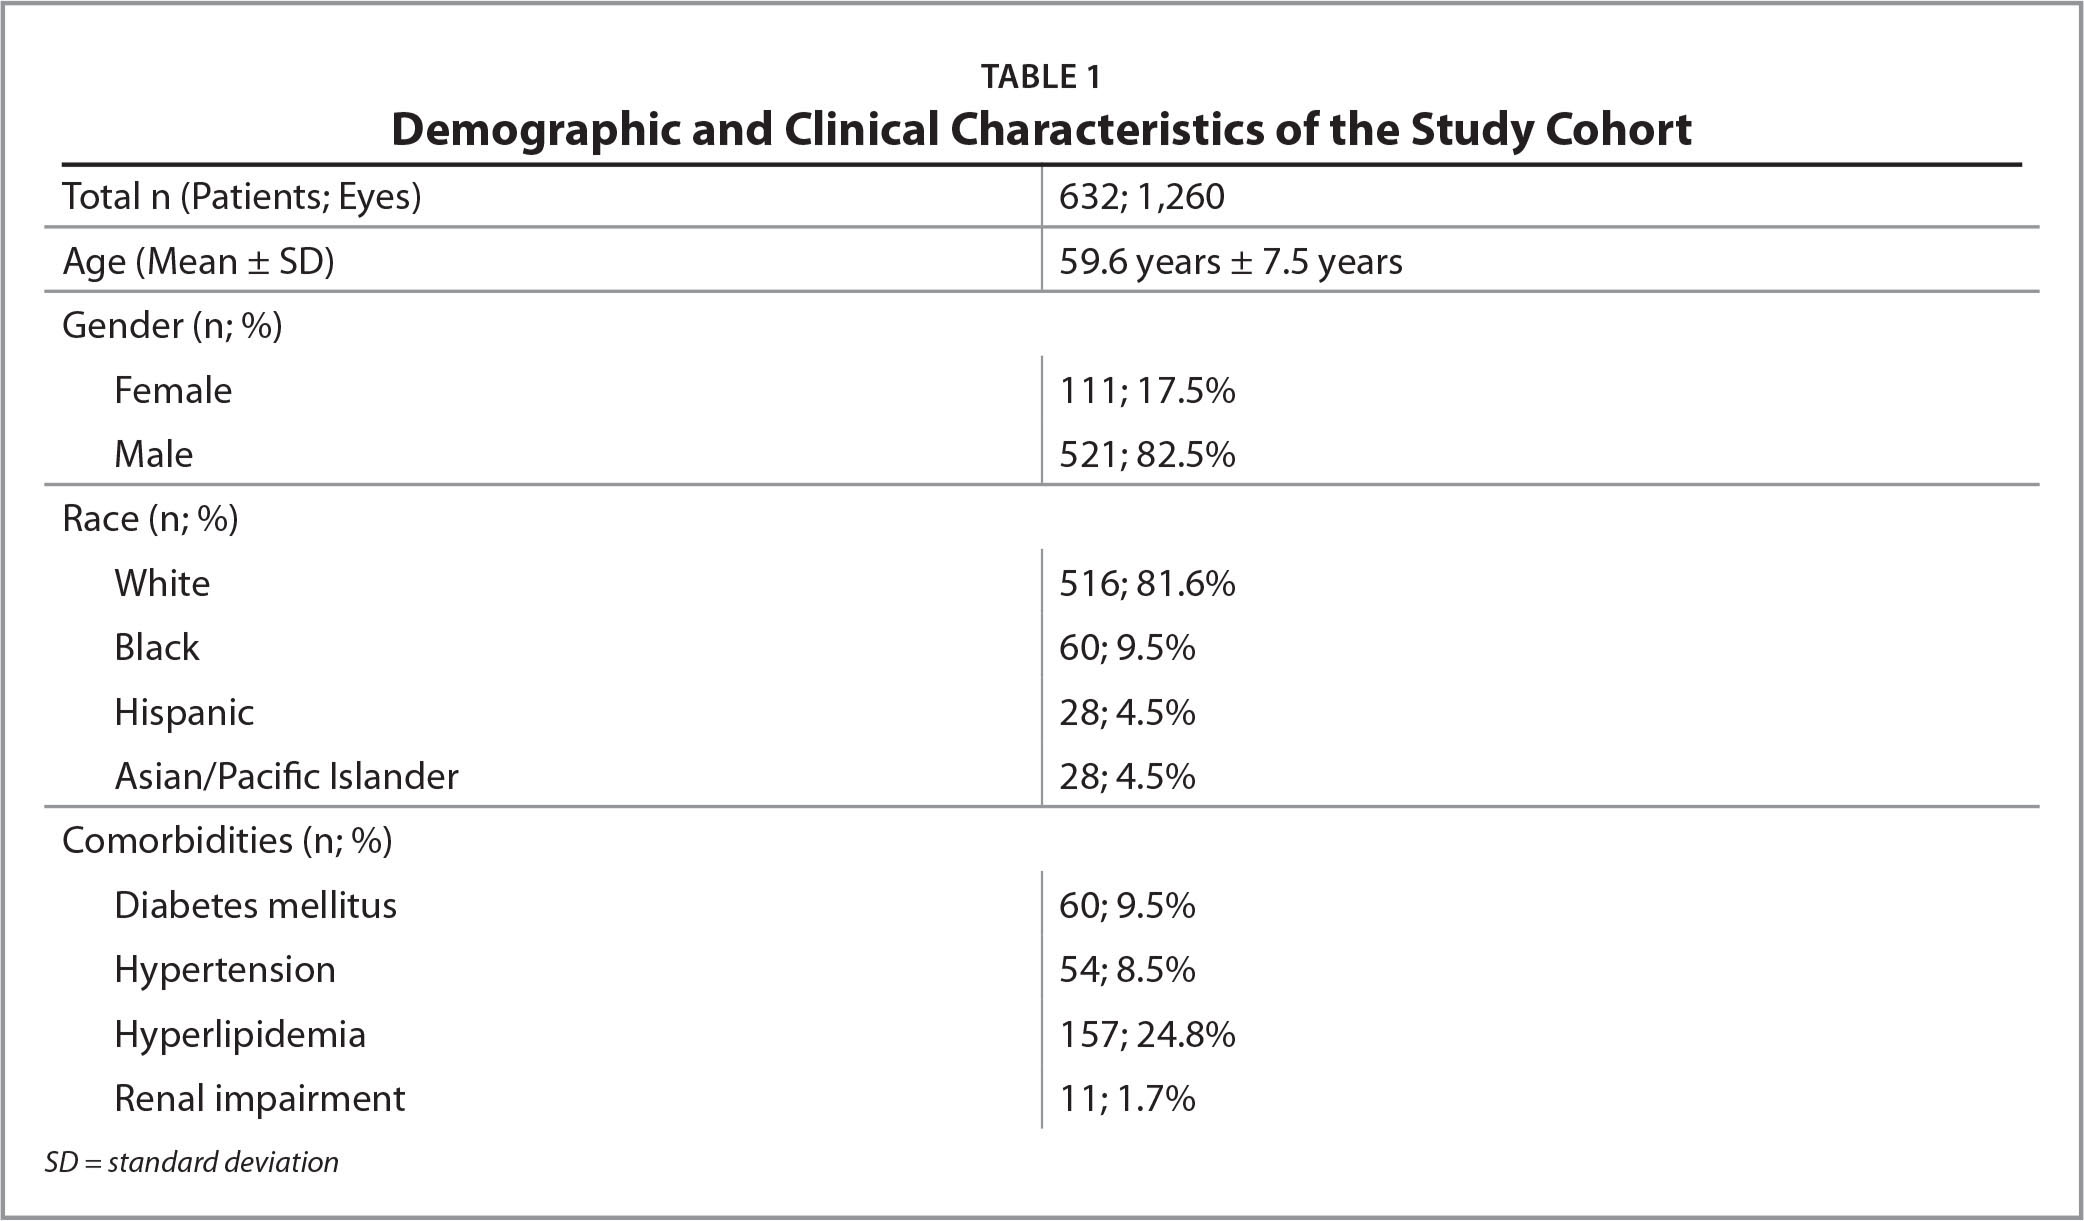 Demographic and Clinical Characteristics of the Study Cohort